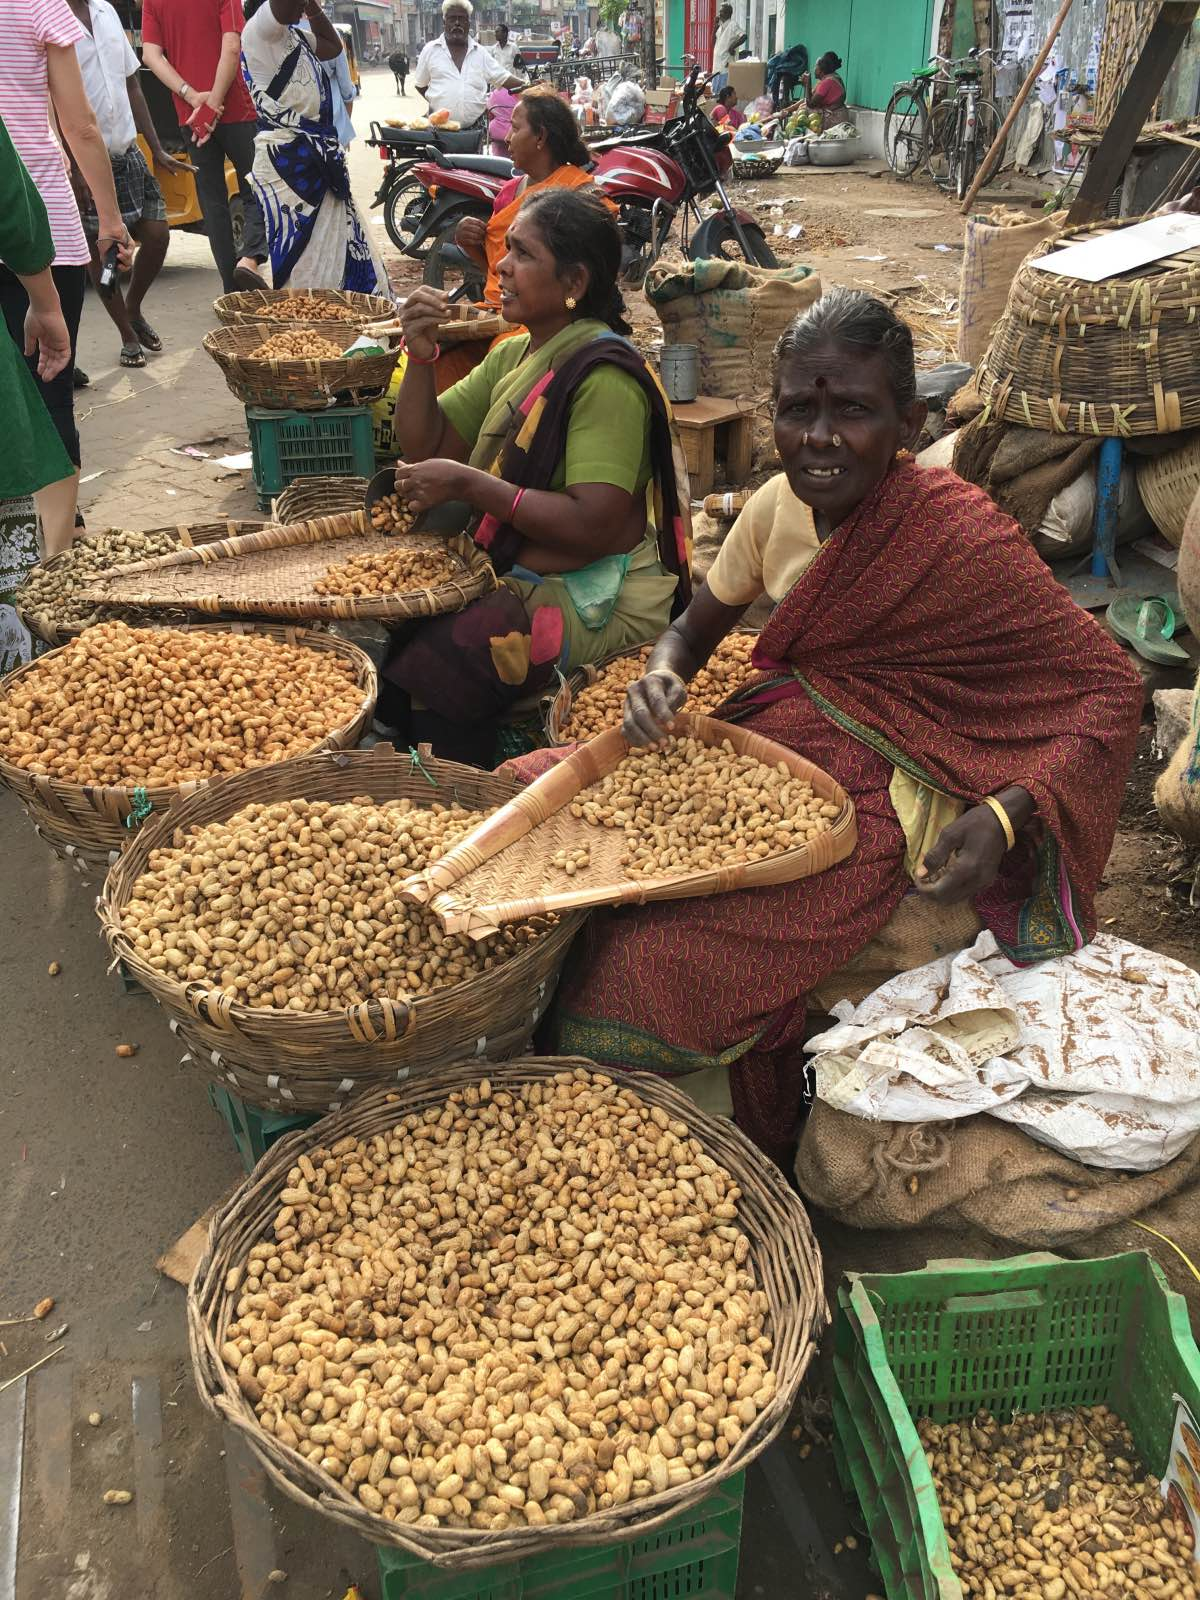 Nut sellers at Madurai Market